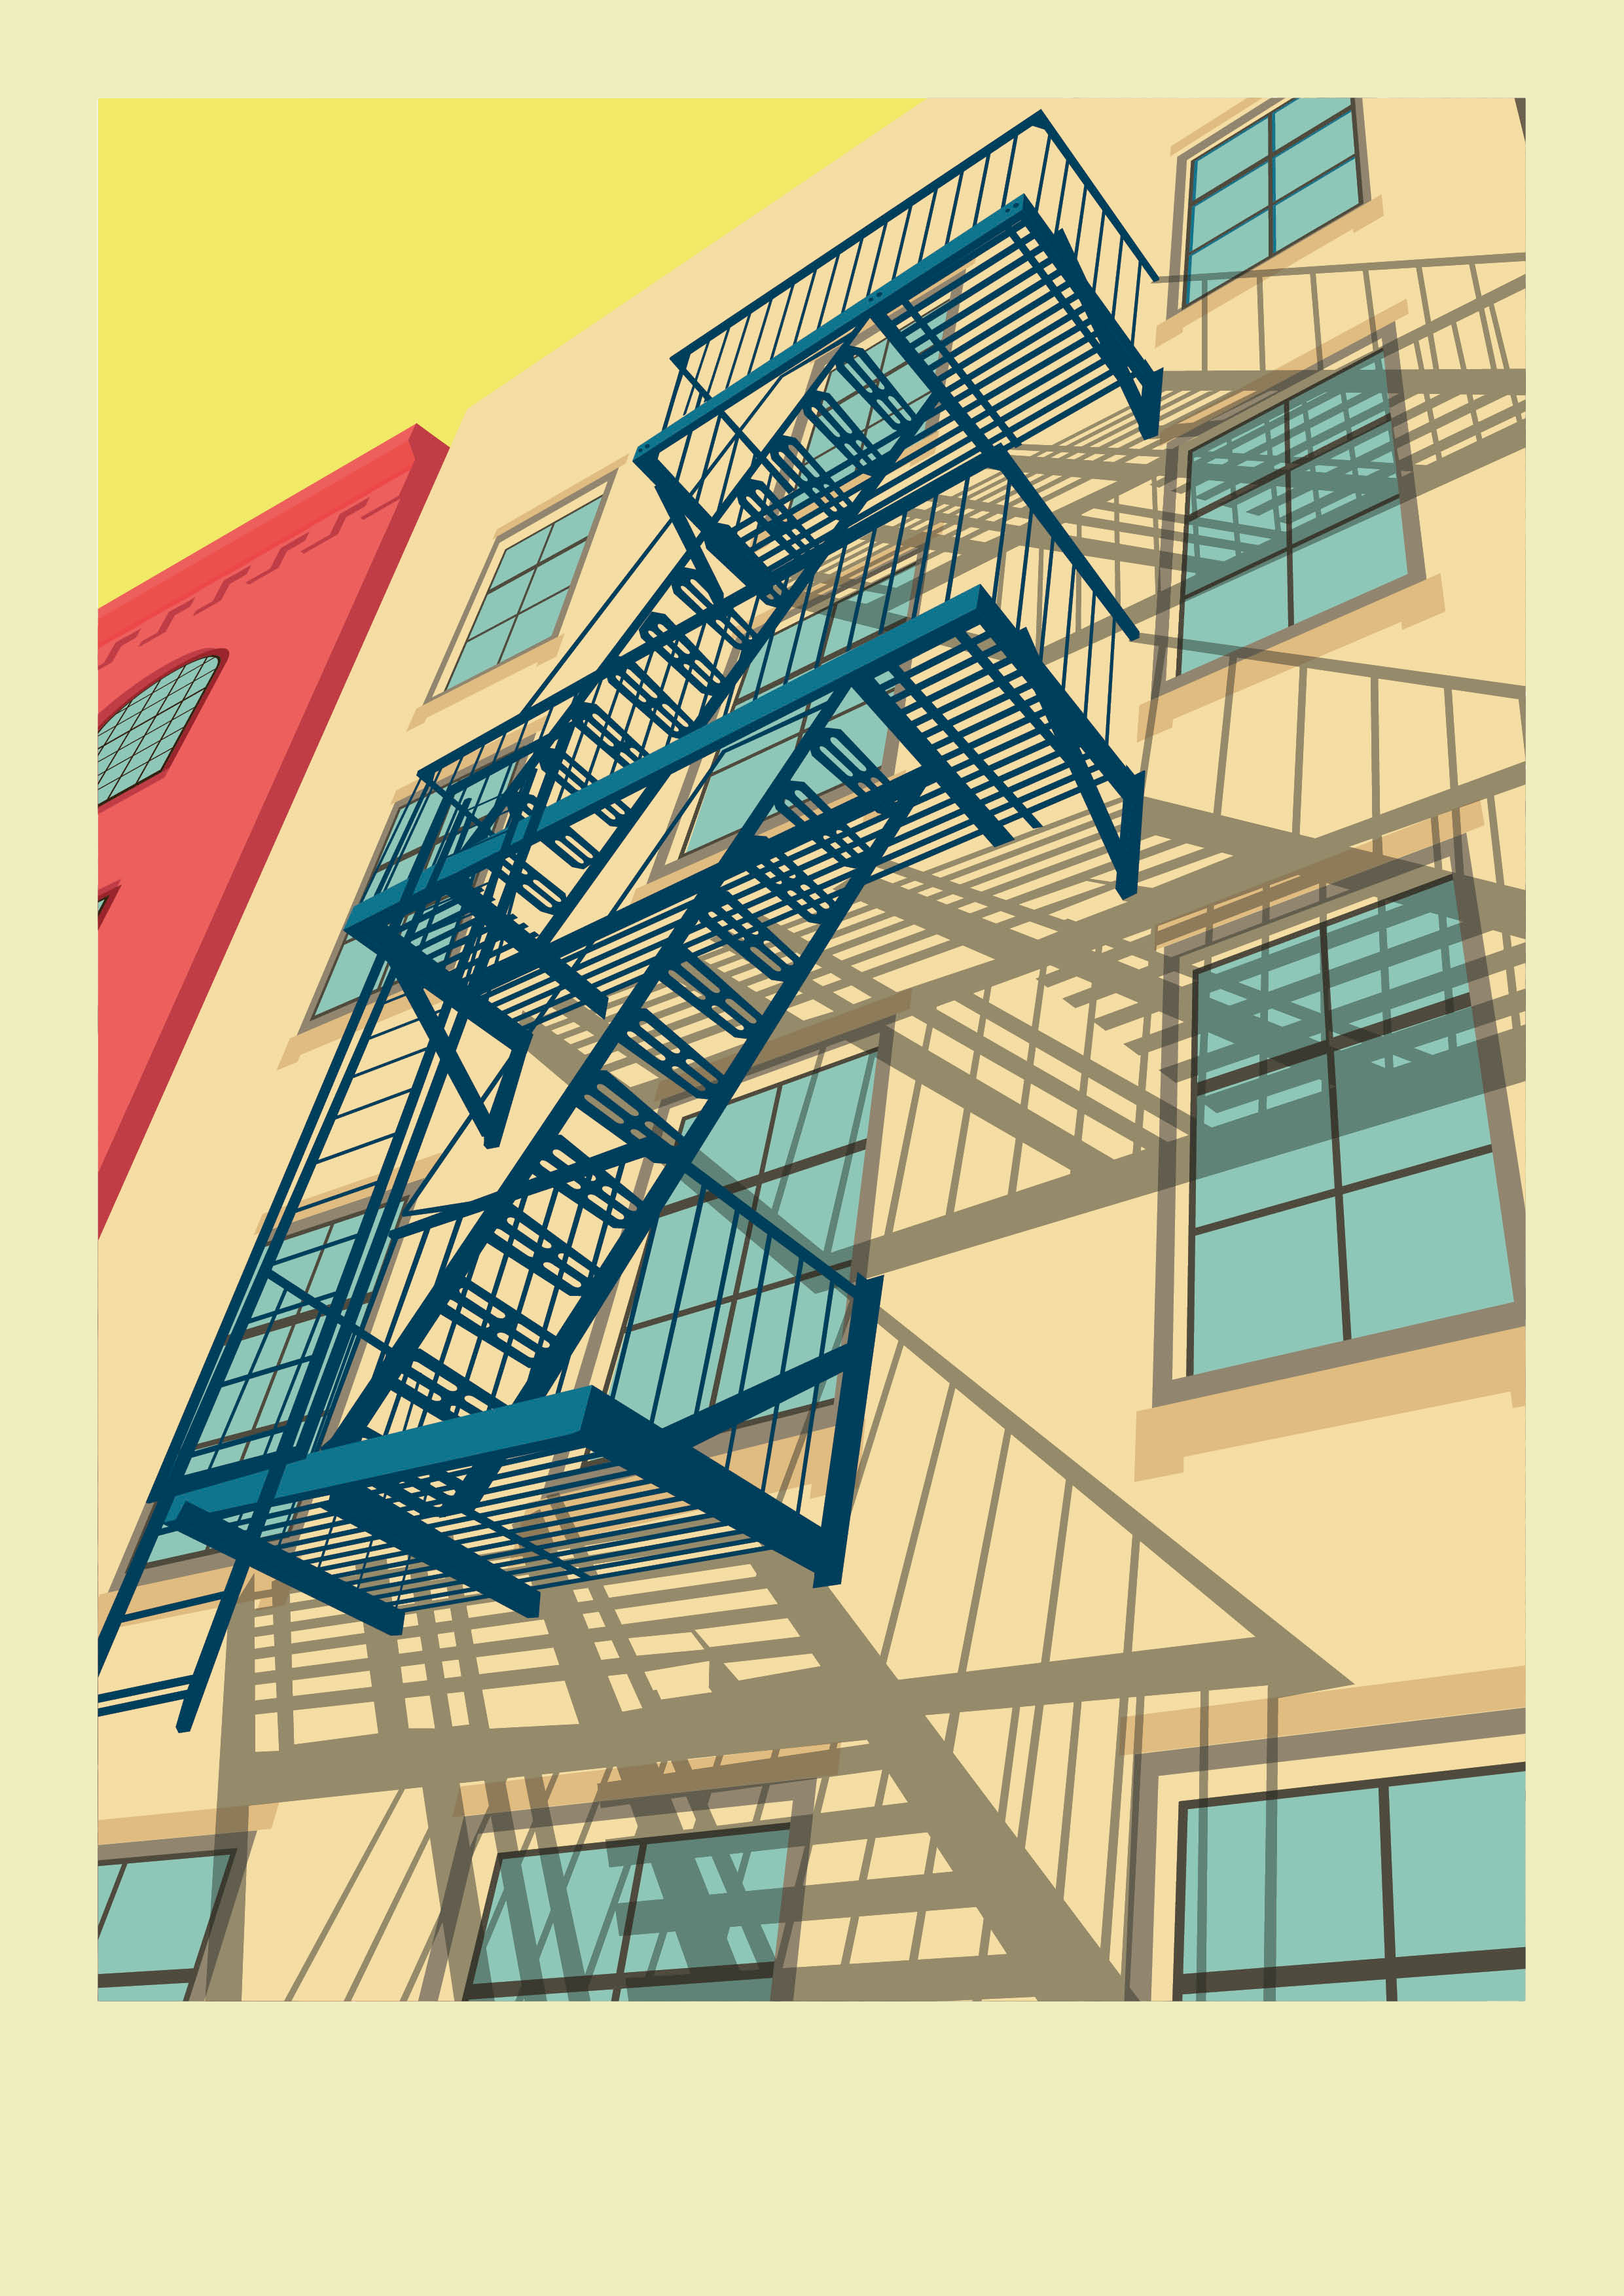 Colourful New York City Illustrations by Remko Heemskerk